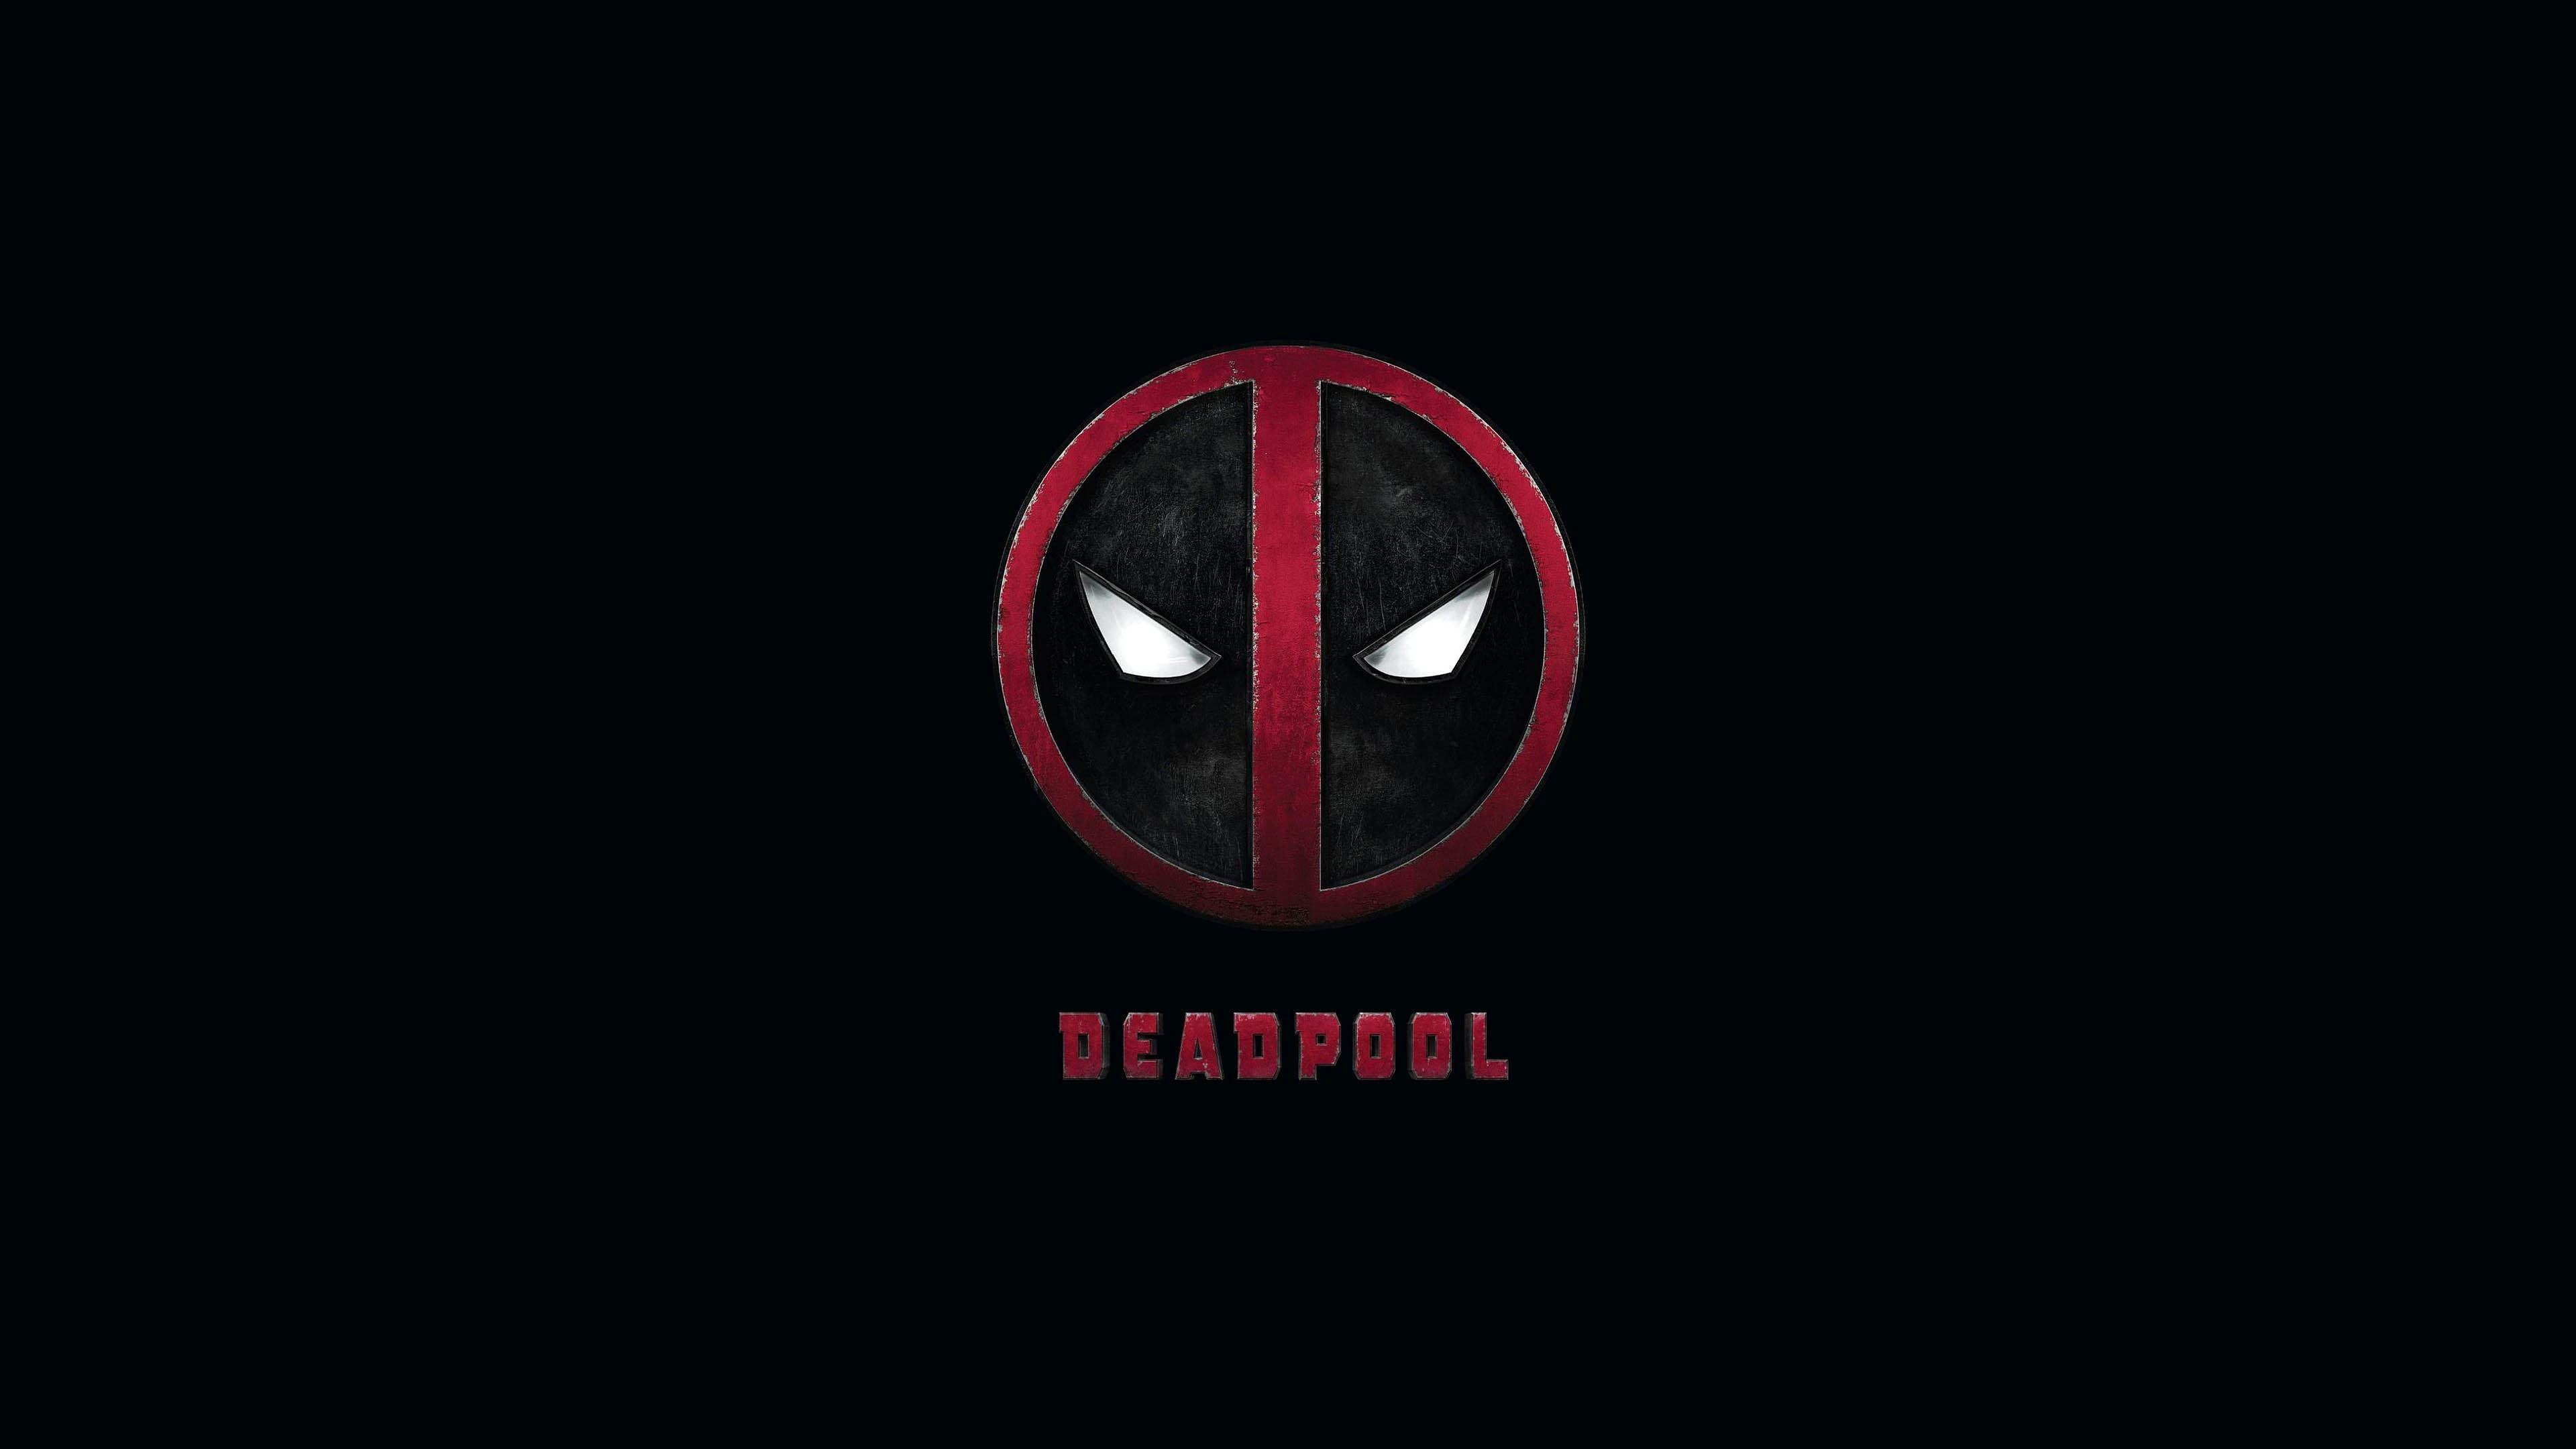 Deadpool Logo Wallpaper 63 Images HD Wallpapers Download Free Images Wallpaper [1000image.com]